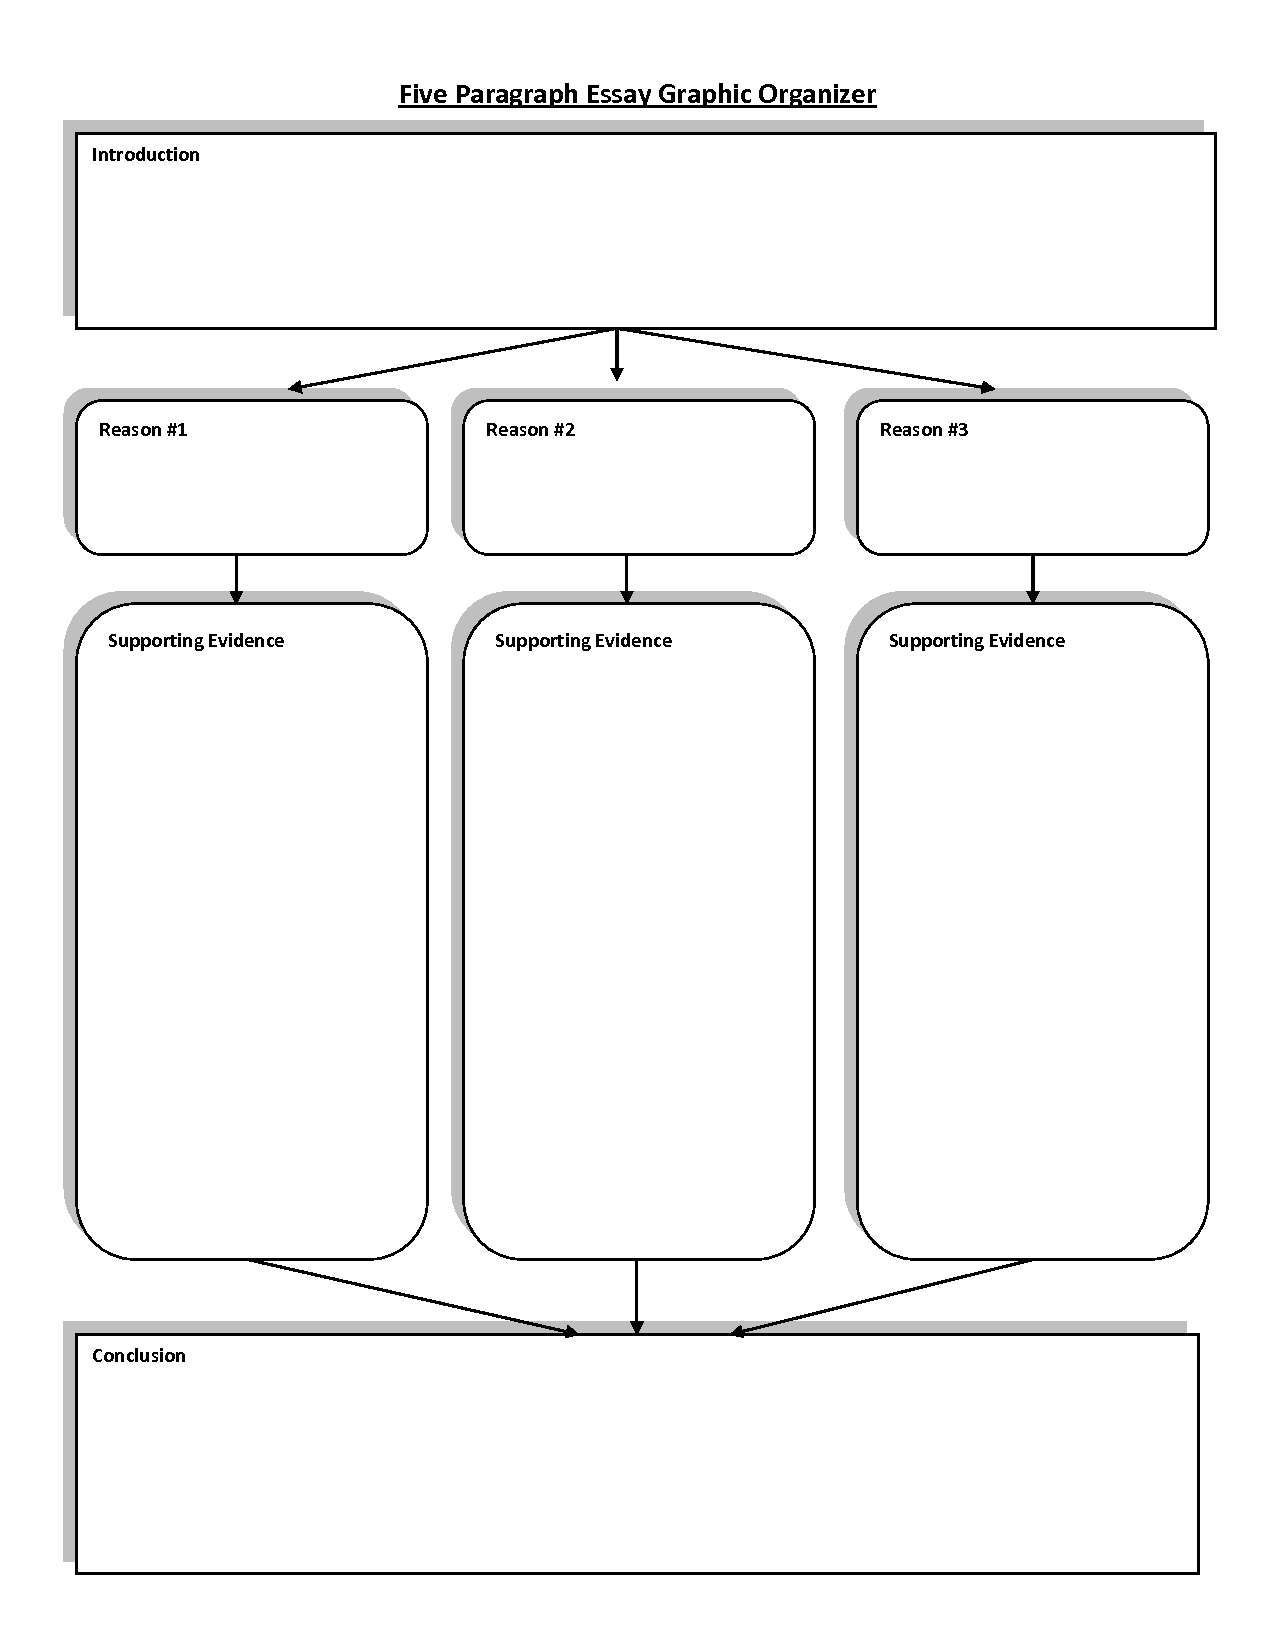 5 paragraph opinion essay graphic organizer